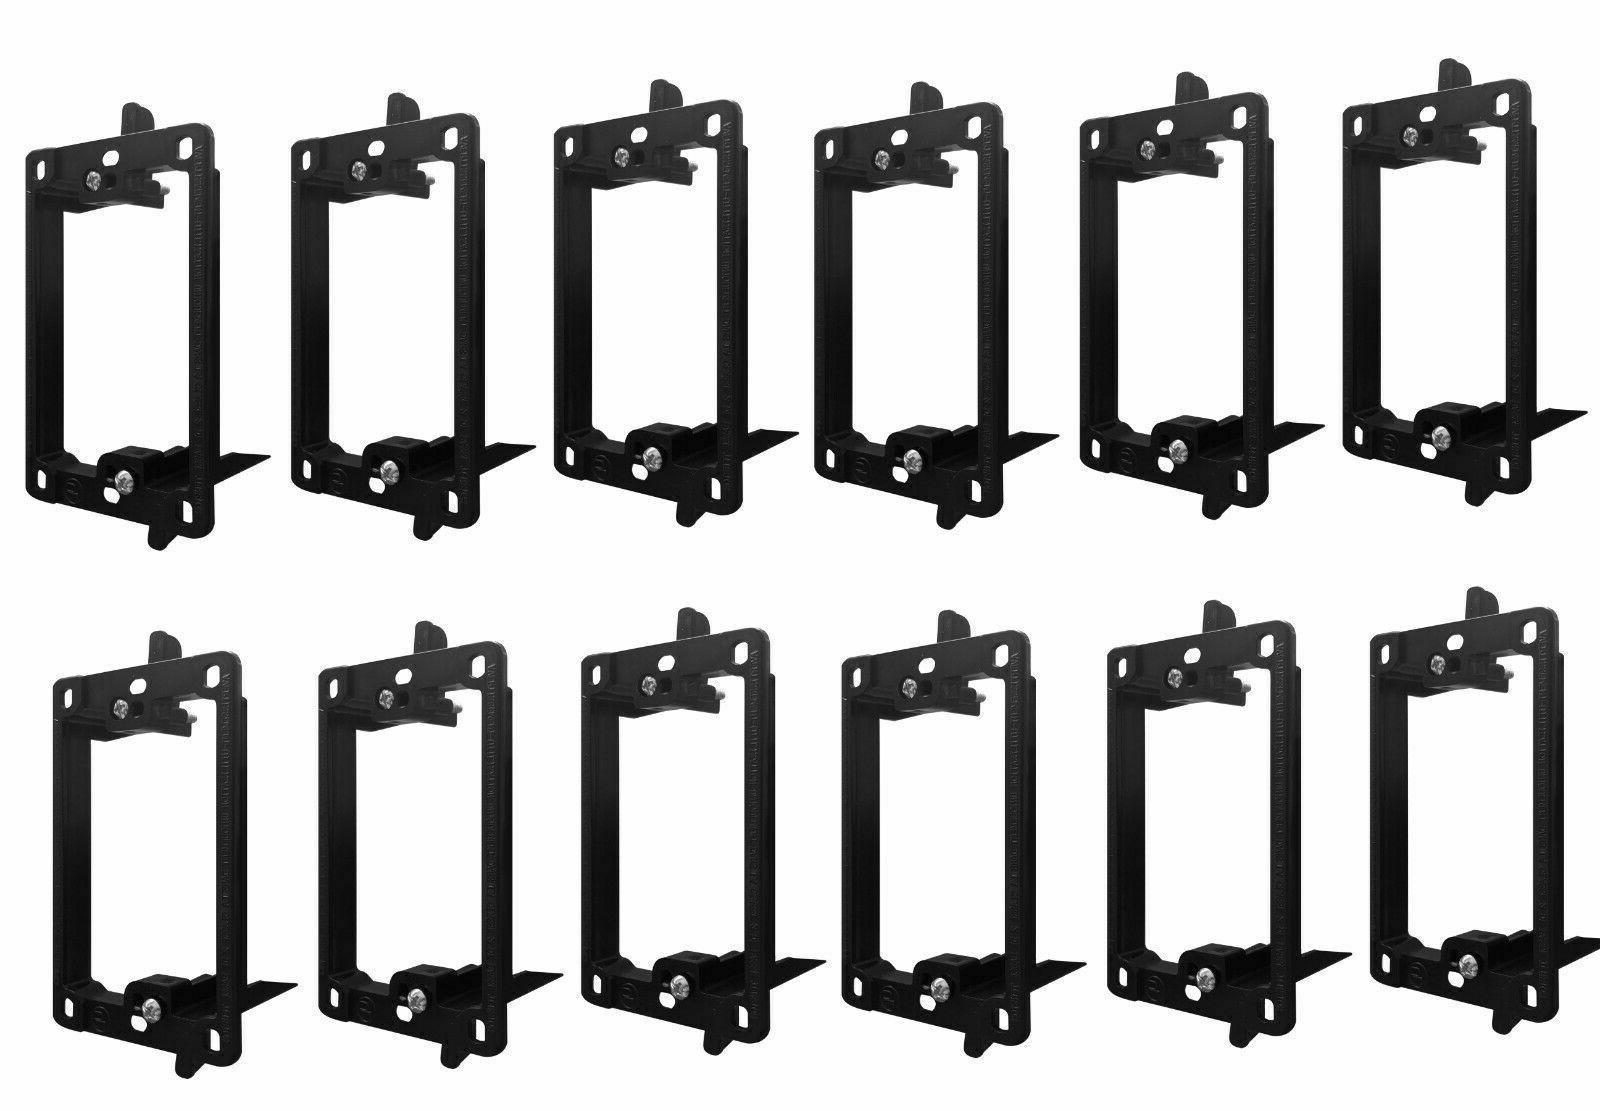 Single 1-gang Face Plate Mount Mud Voltage 10 Pack